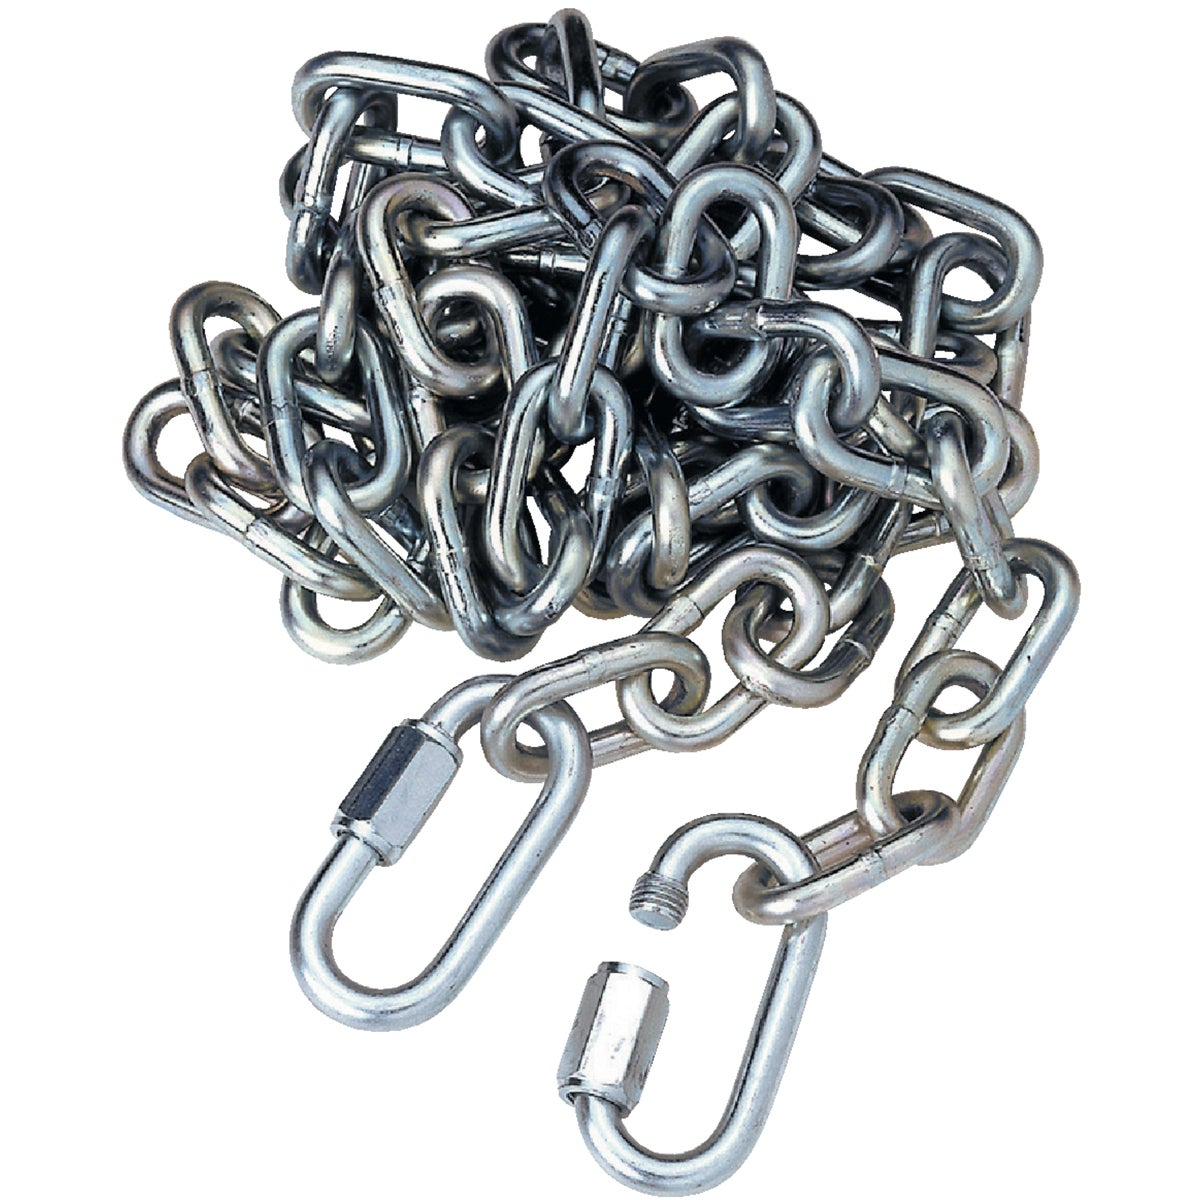 Tow Safety Chain